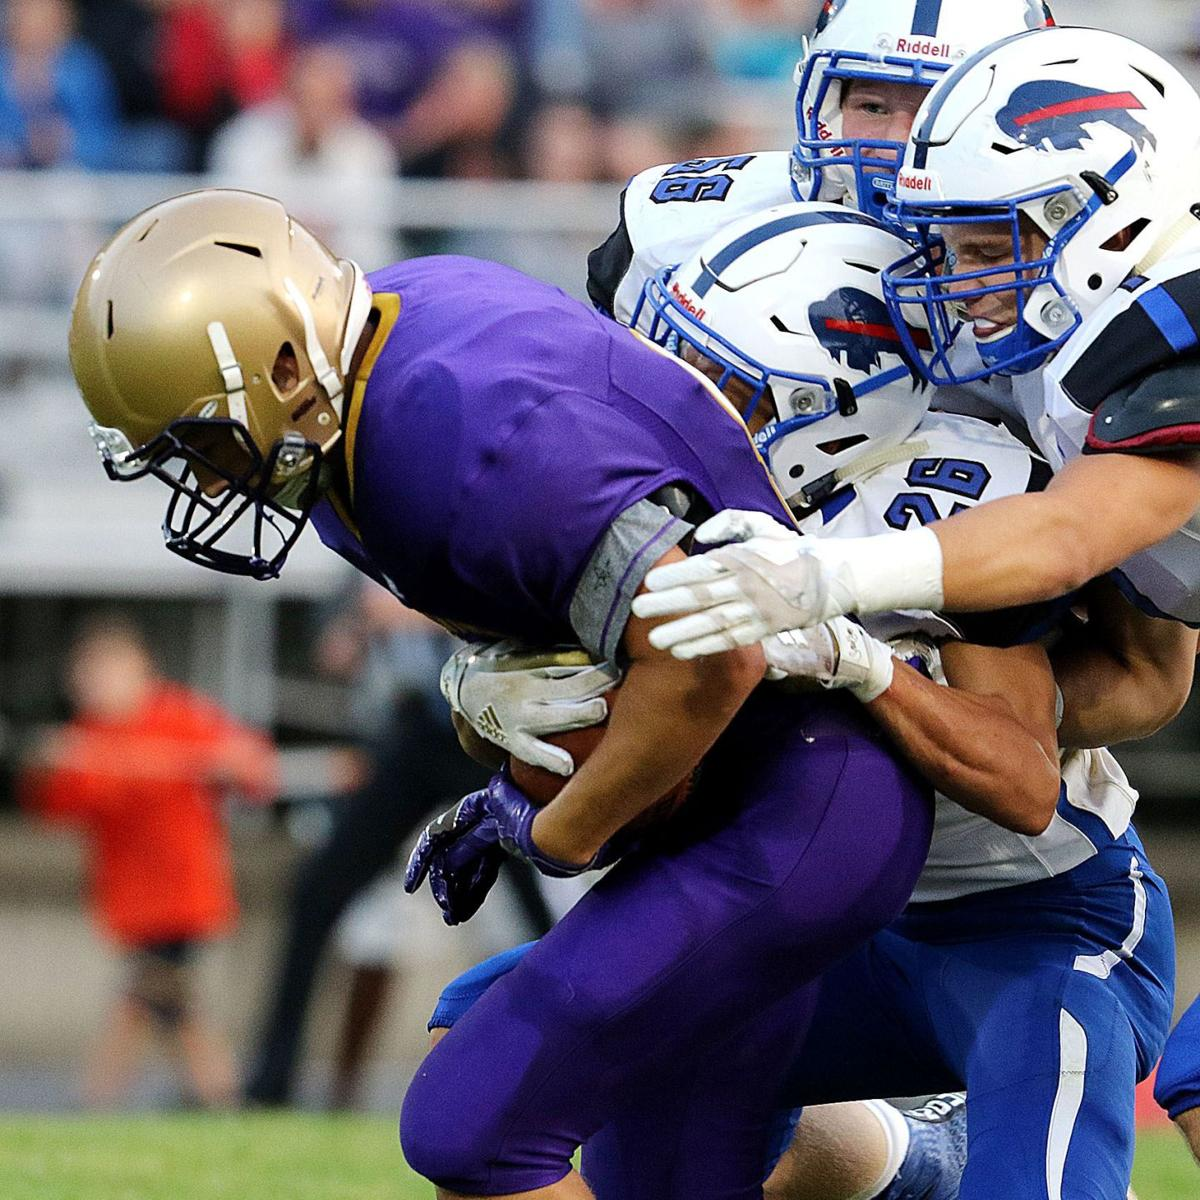 Prep football: Conference realignment plan leaves some area